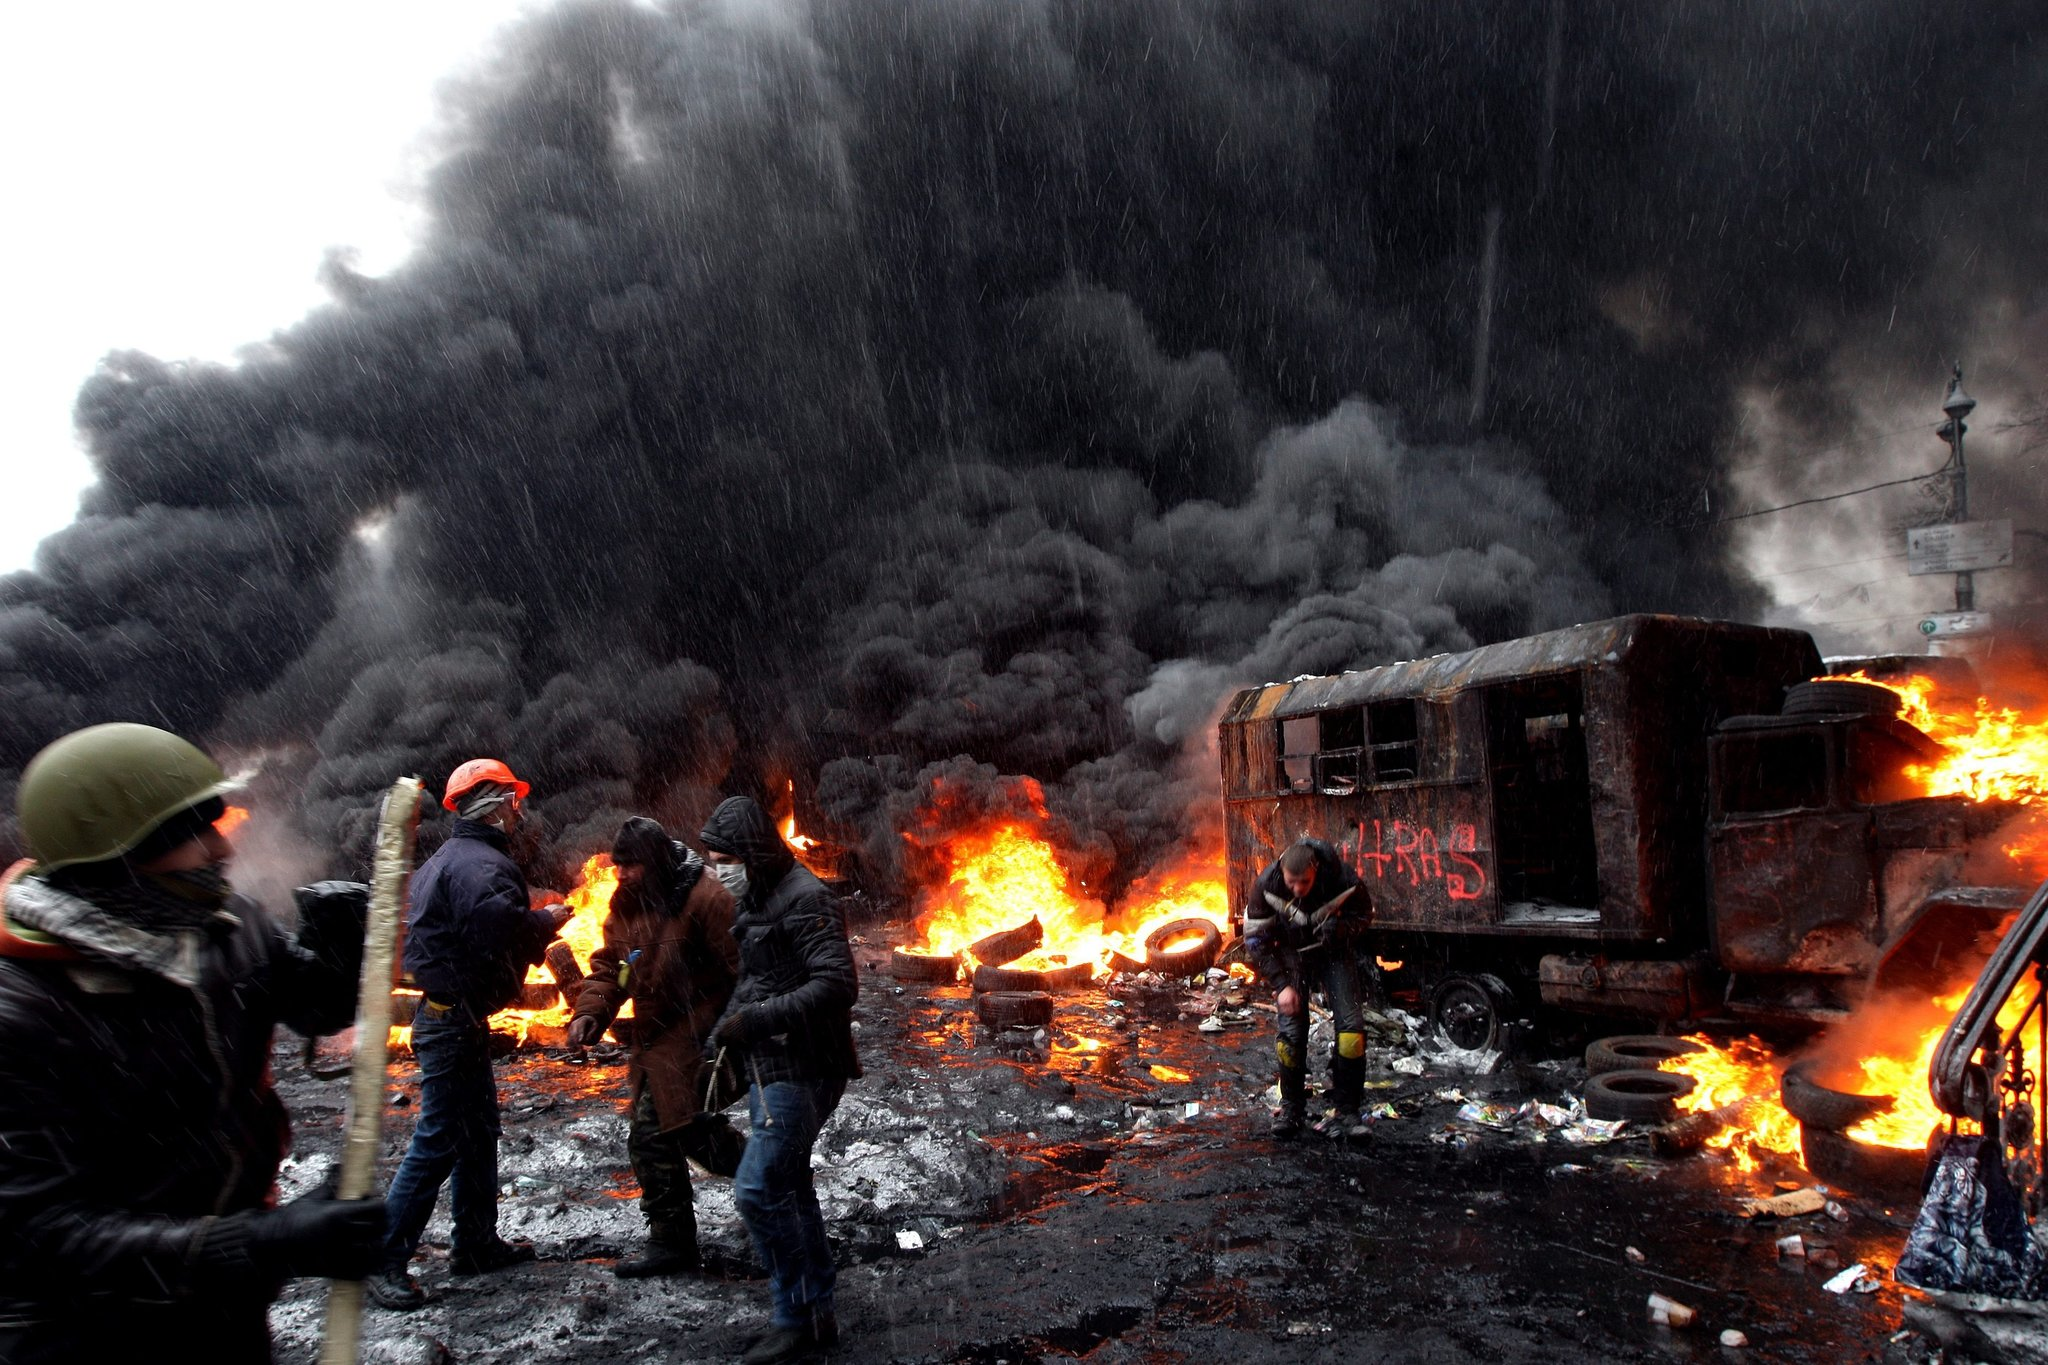 Protesters have turned charred police buses into barricades.